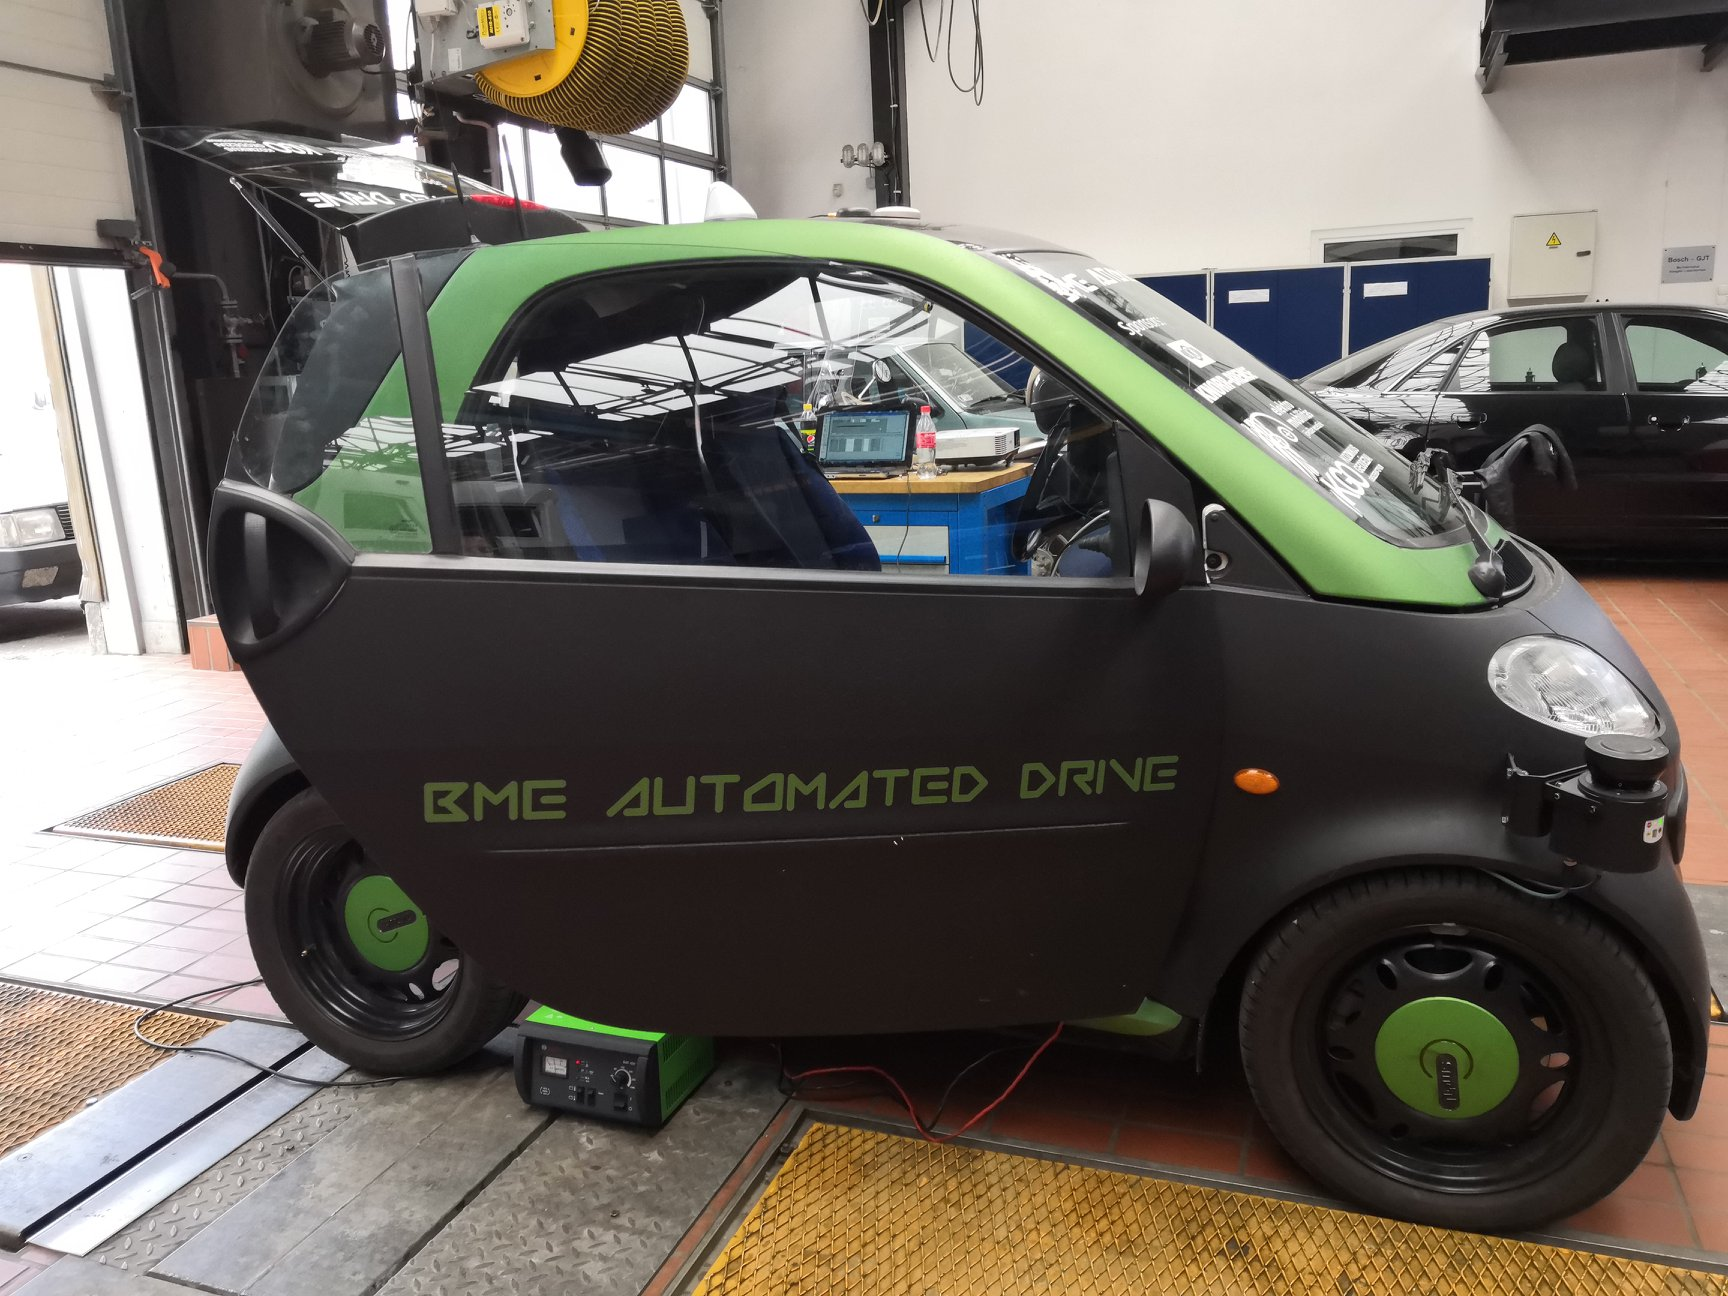 BME Automated Drive, car, Hungary